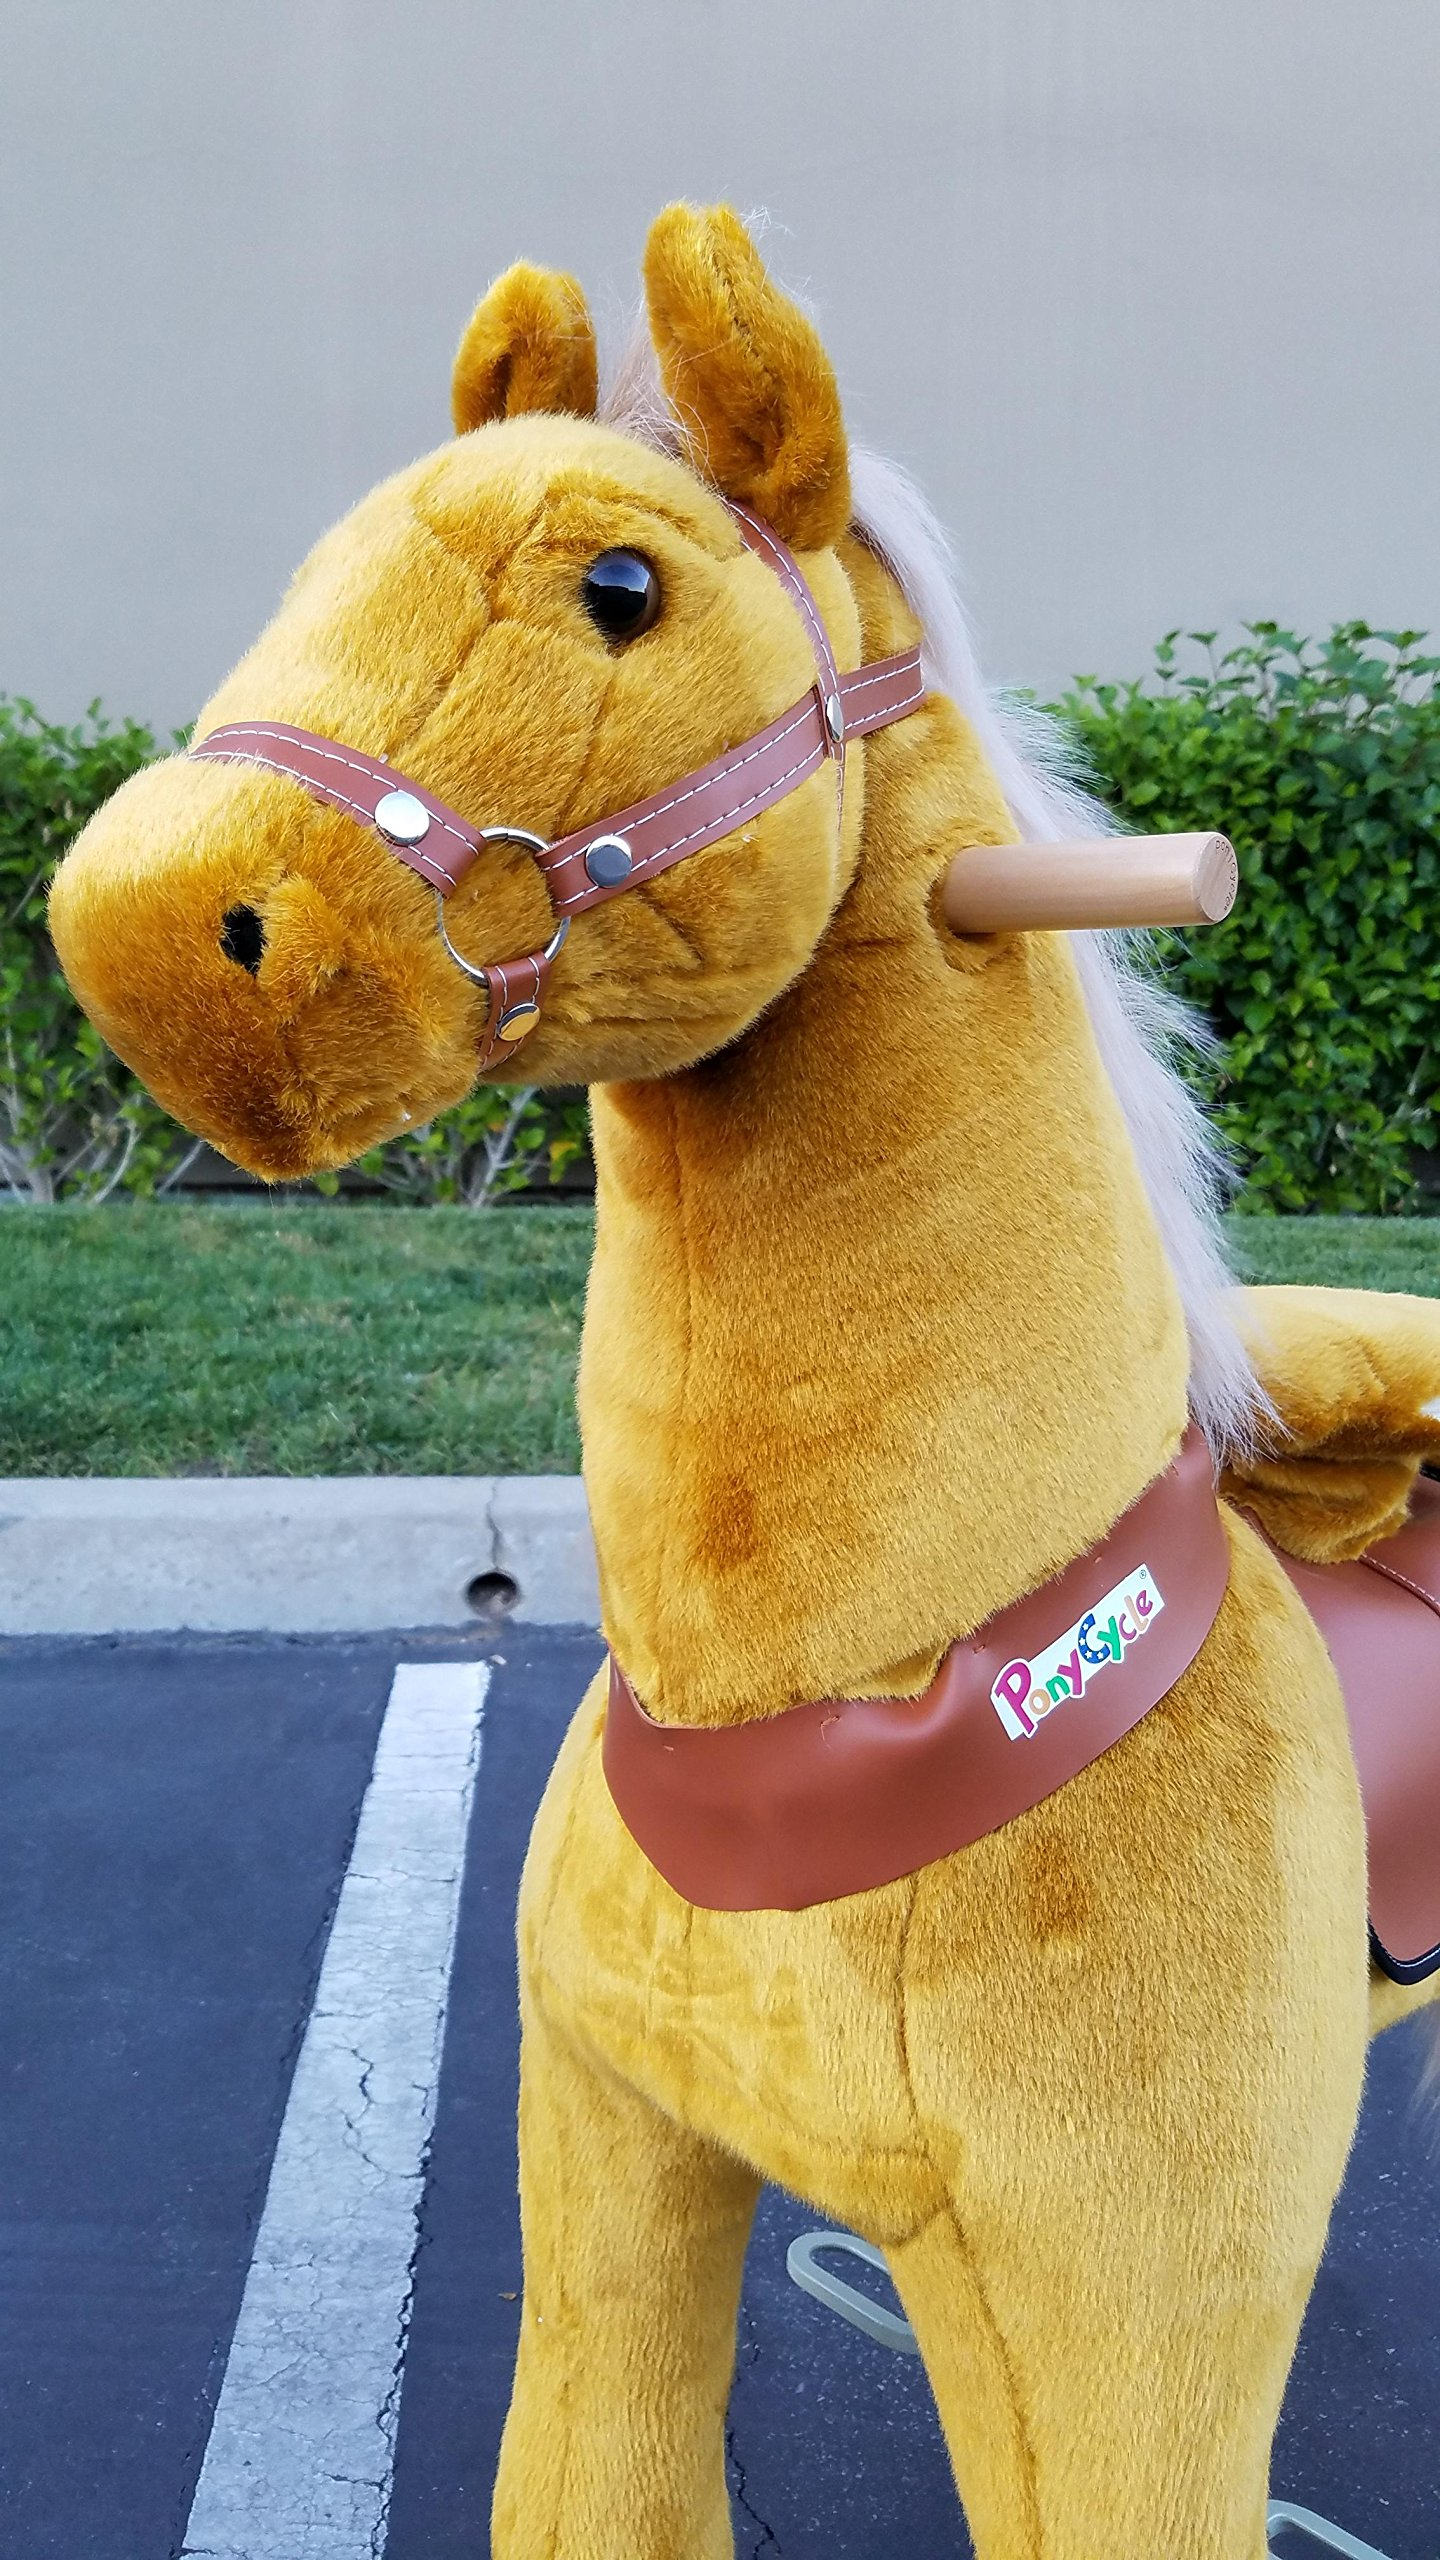 WONDERS SHOP USA - Pony Cycle Ponycycle Walking Ride On Horse - Size MEDIUM for Children 4-9 Years Old or Up to 90 Pounds